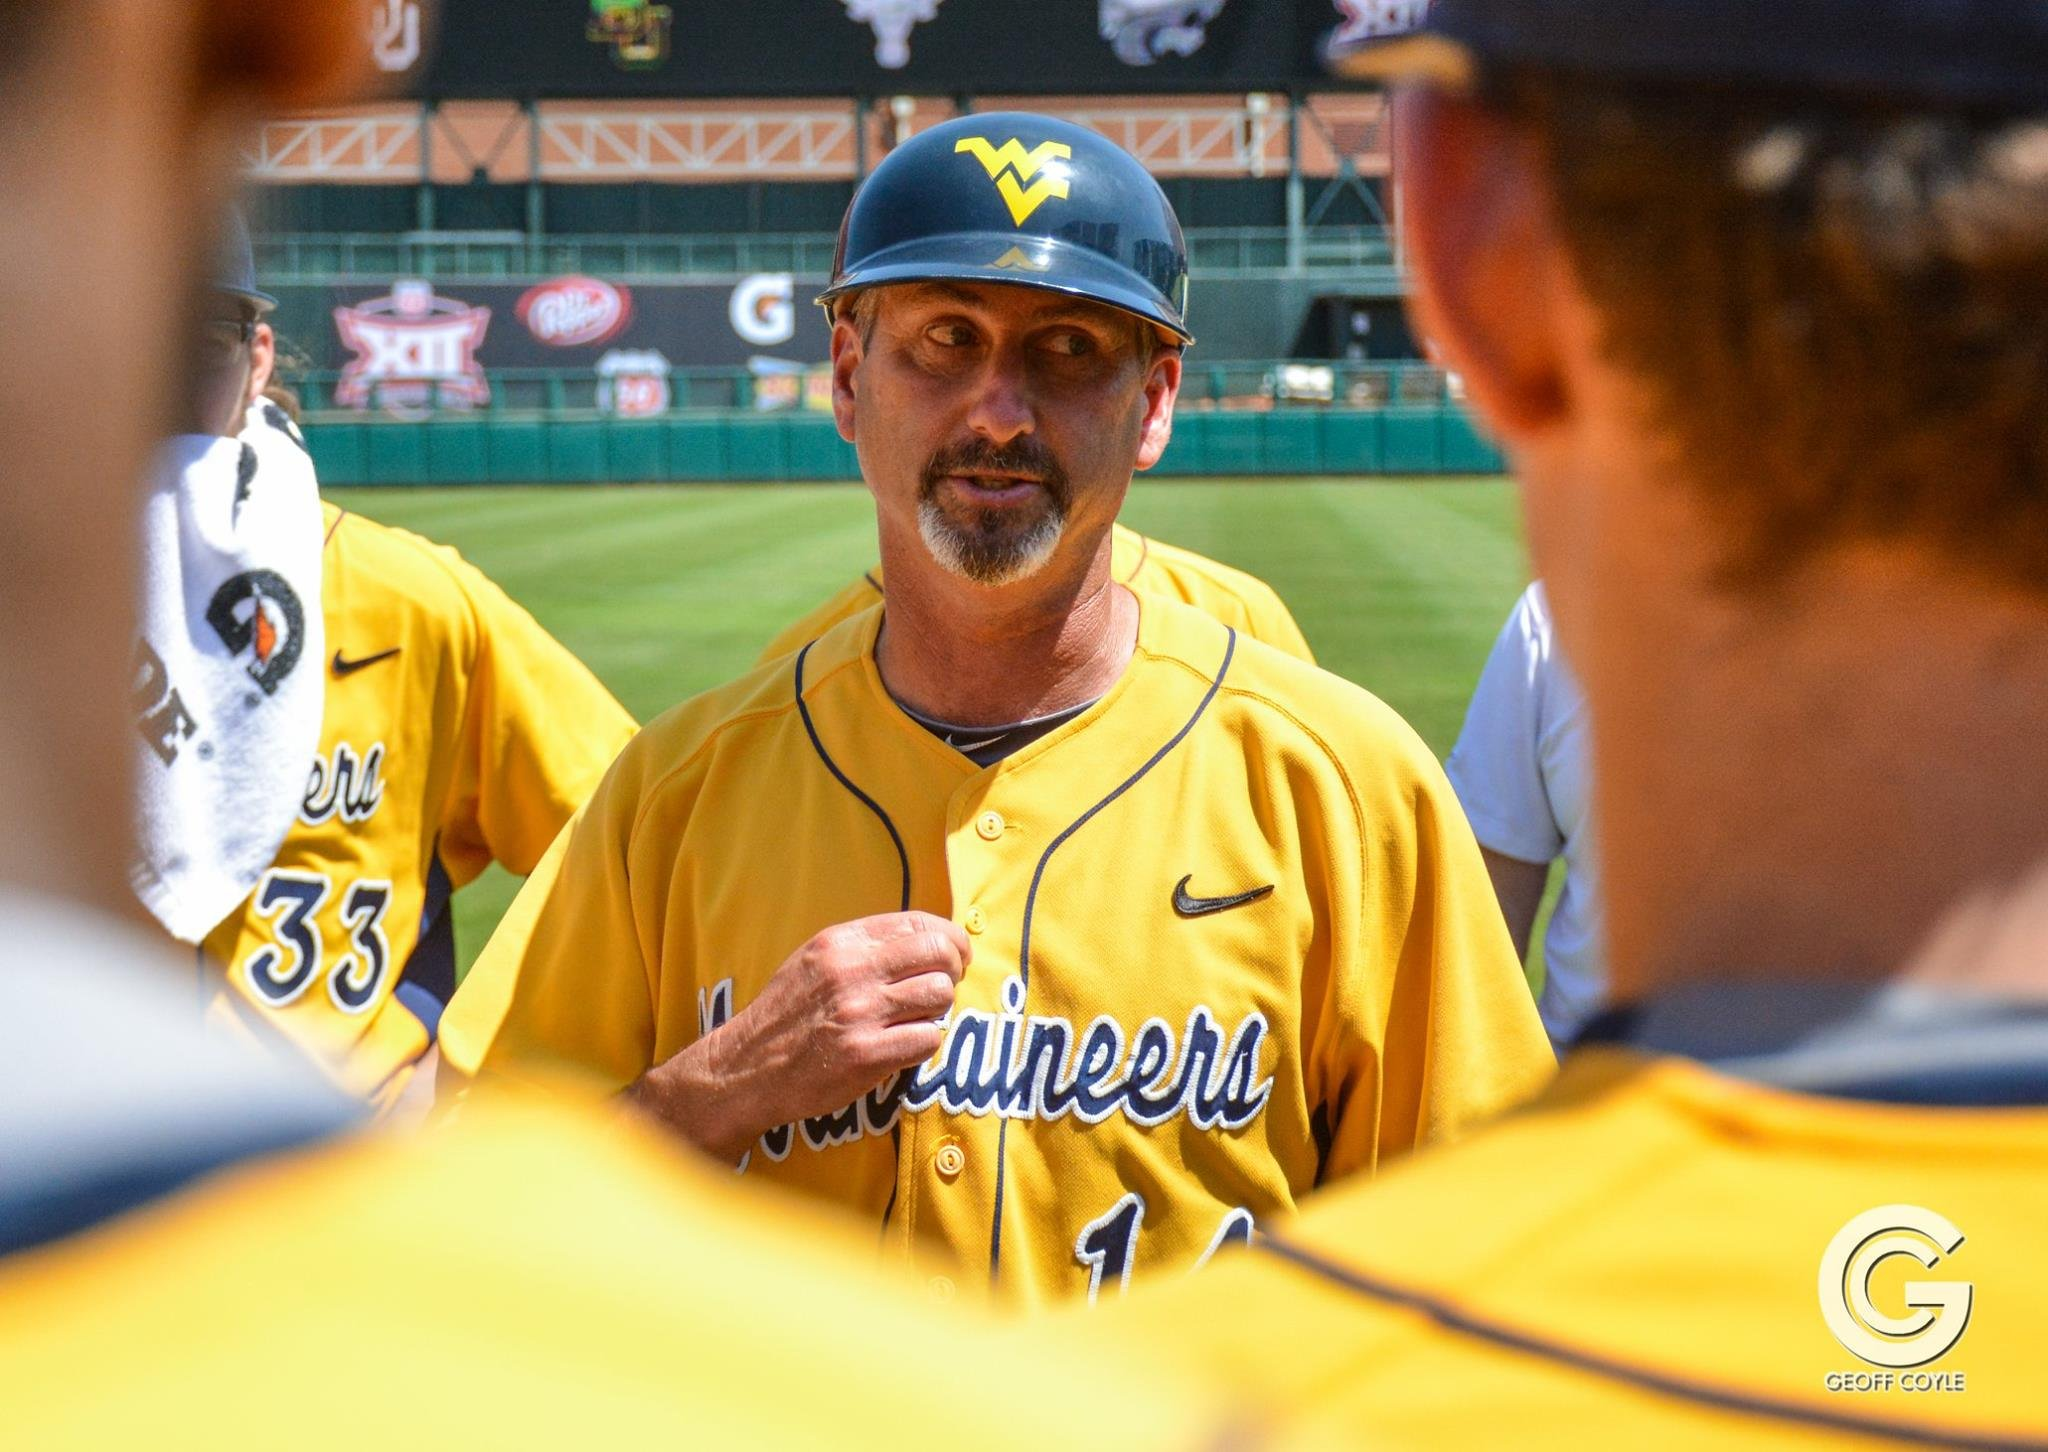 Randy Mazey and the Mountaineers have won each of their first three Big 12 series. (PHOTO: Geoff Coyle)